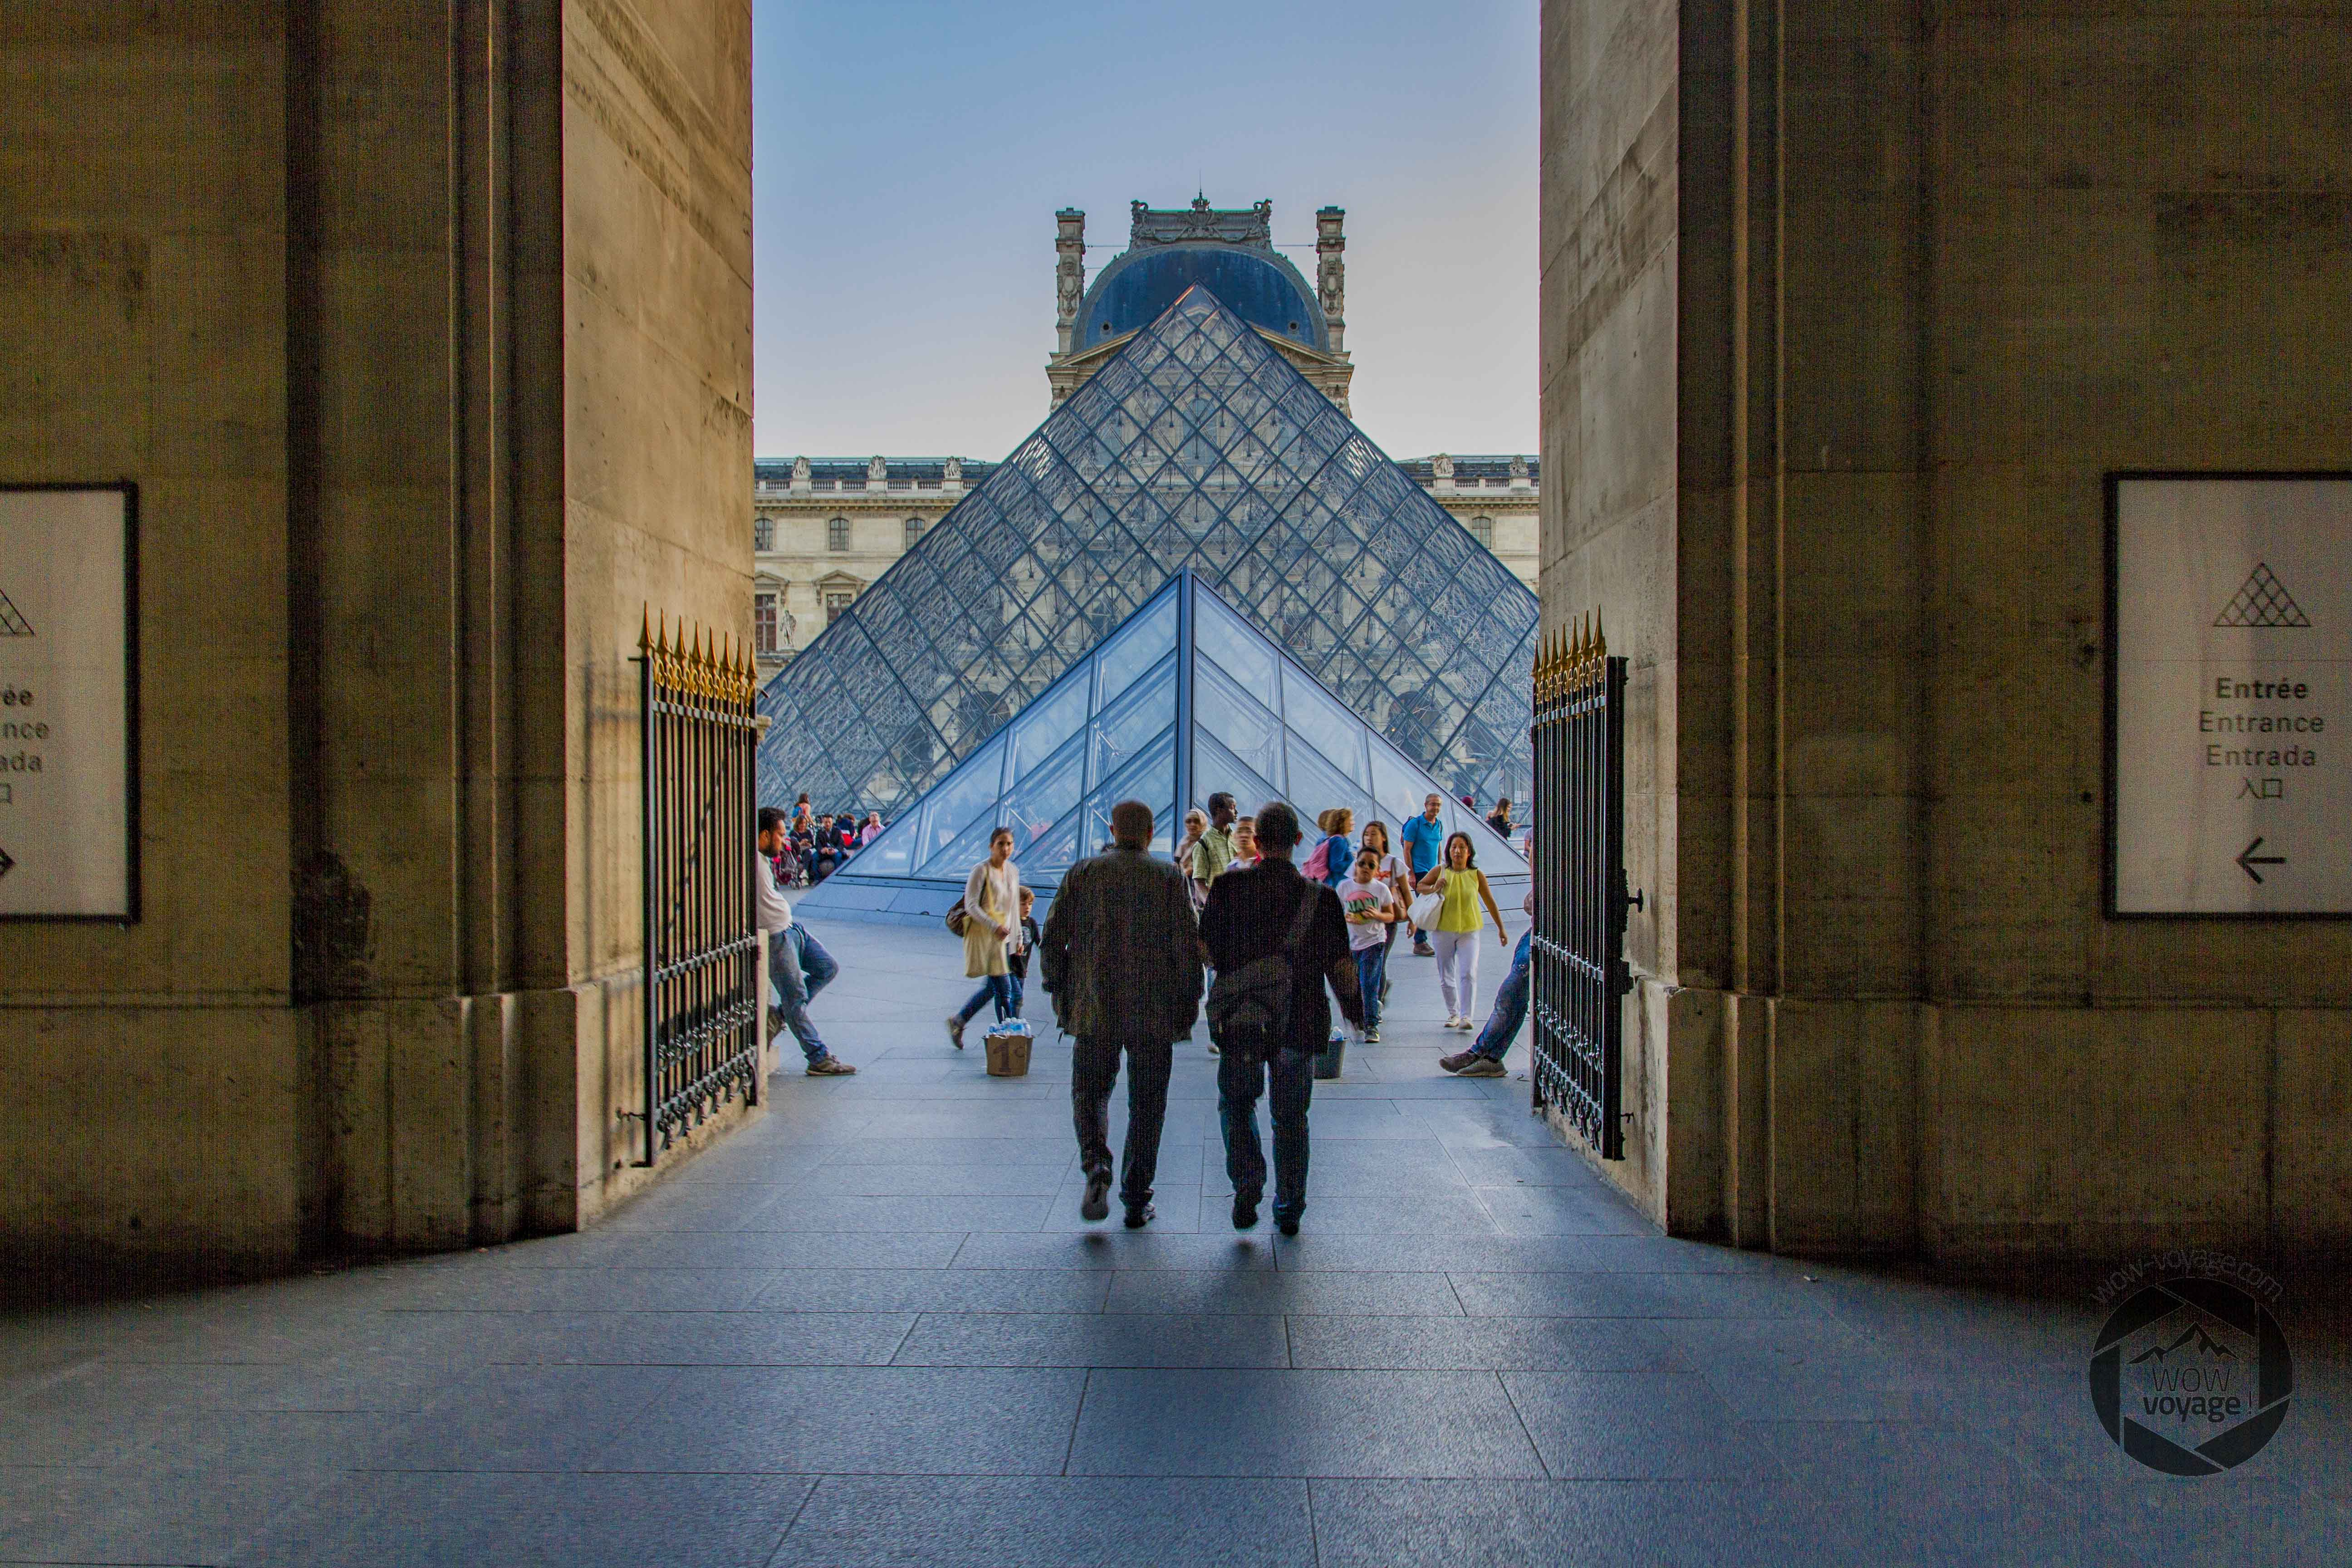 pyramid of the Louvre at sunset People are walking in the street